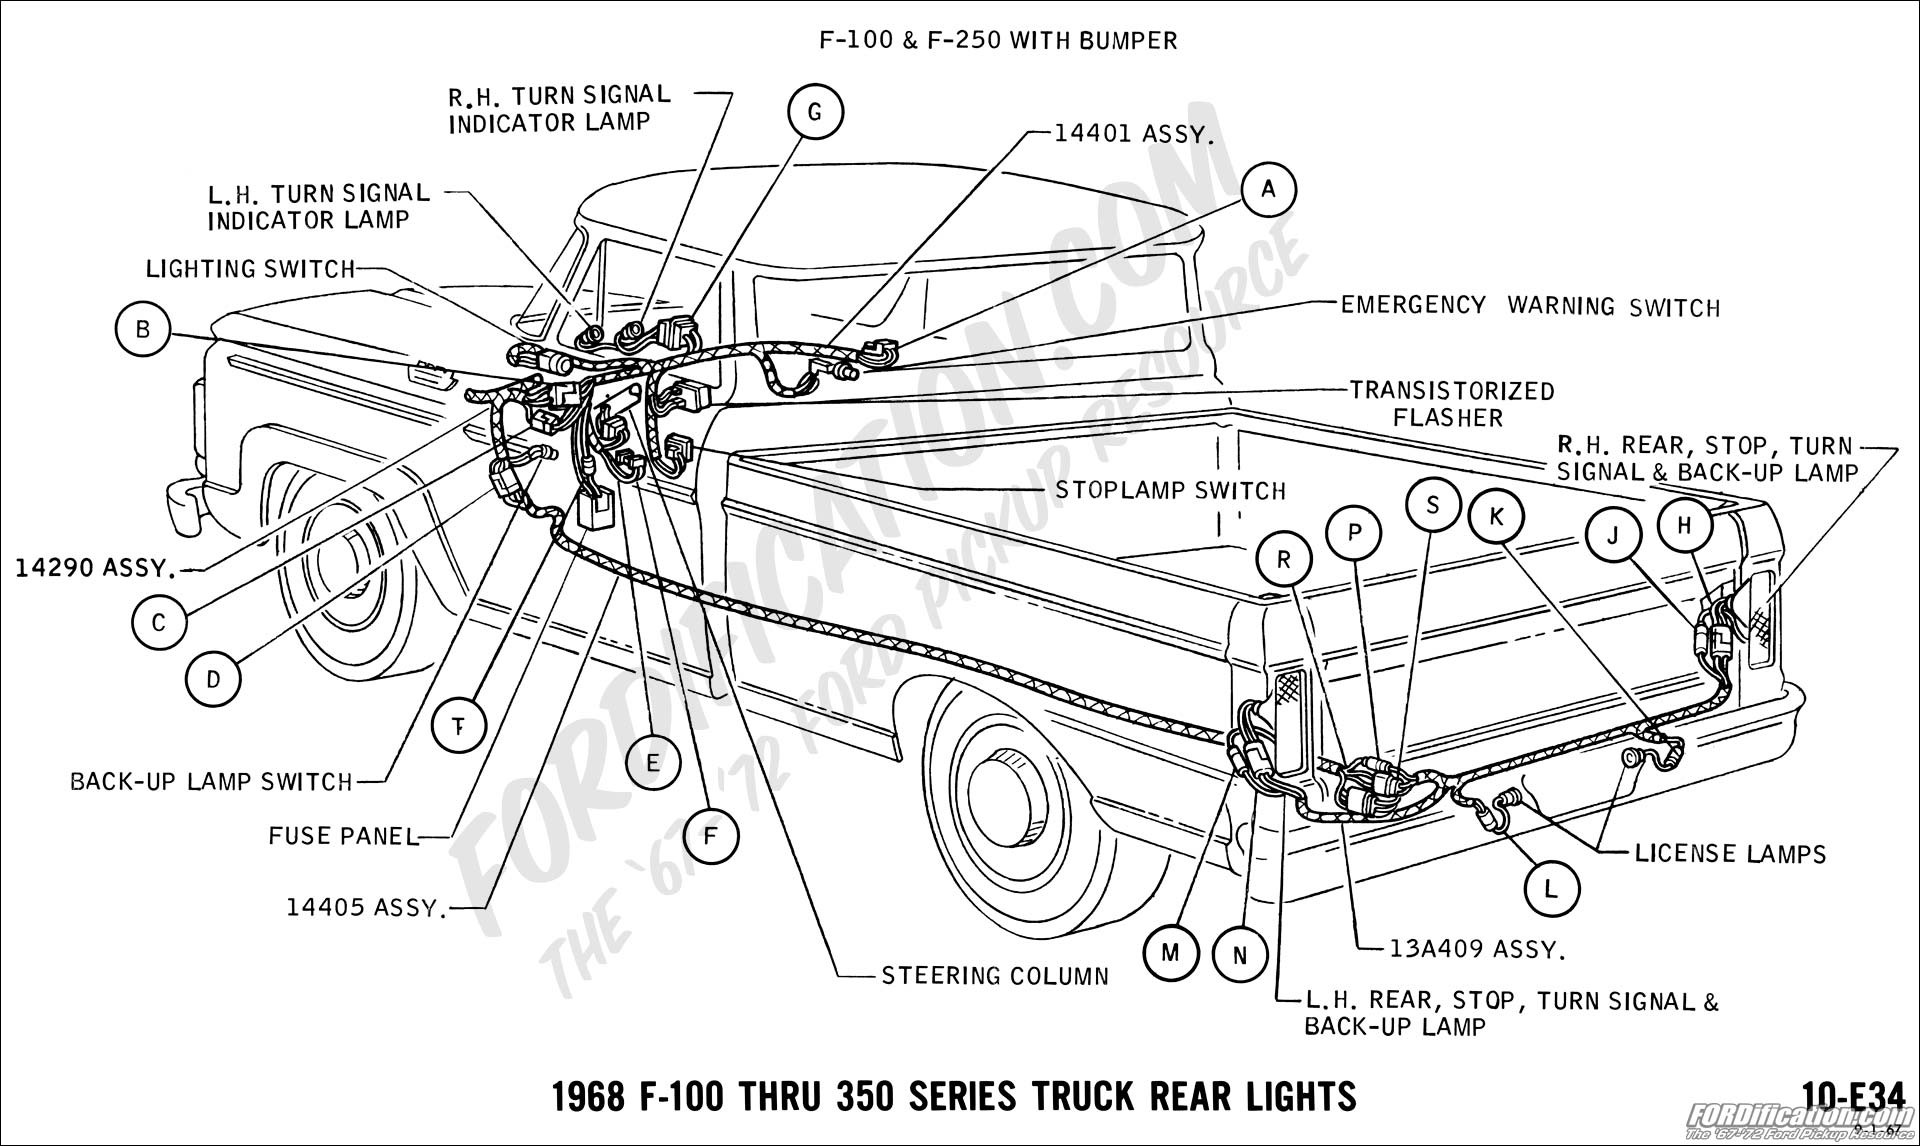 hight resolution of car hood engine diagram wiring library rh 83 budoshop4you de under car diagram of 2006 honda accord v6 under car diagram of 2006 town and country